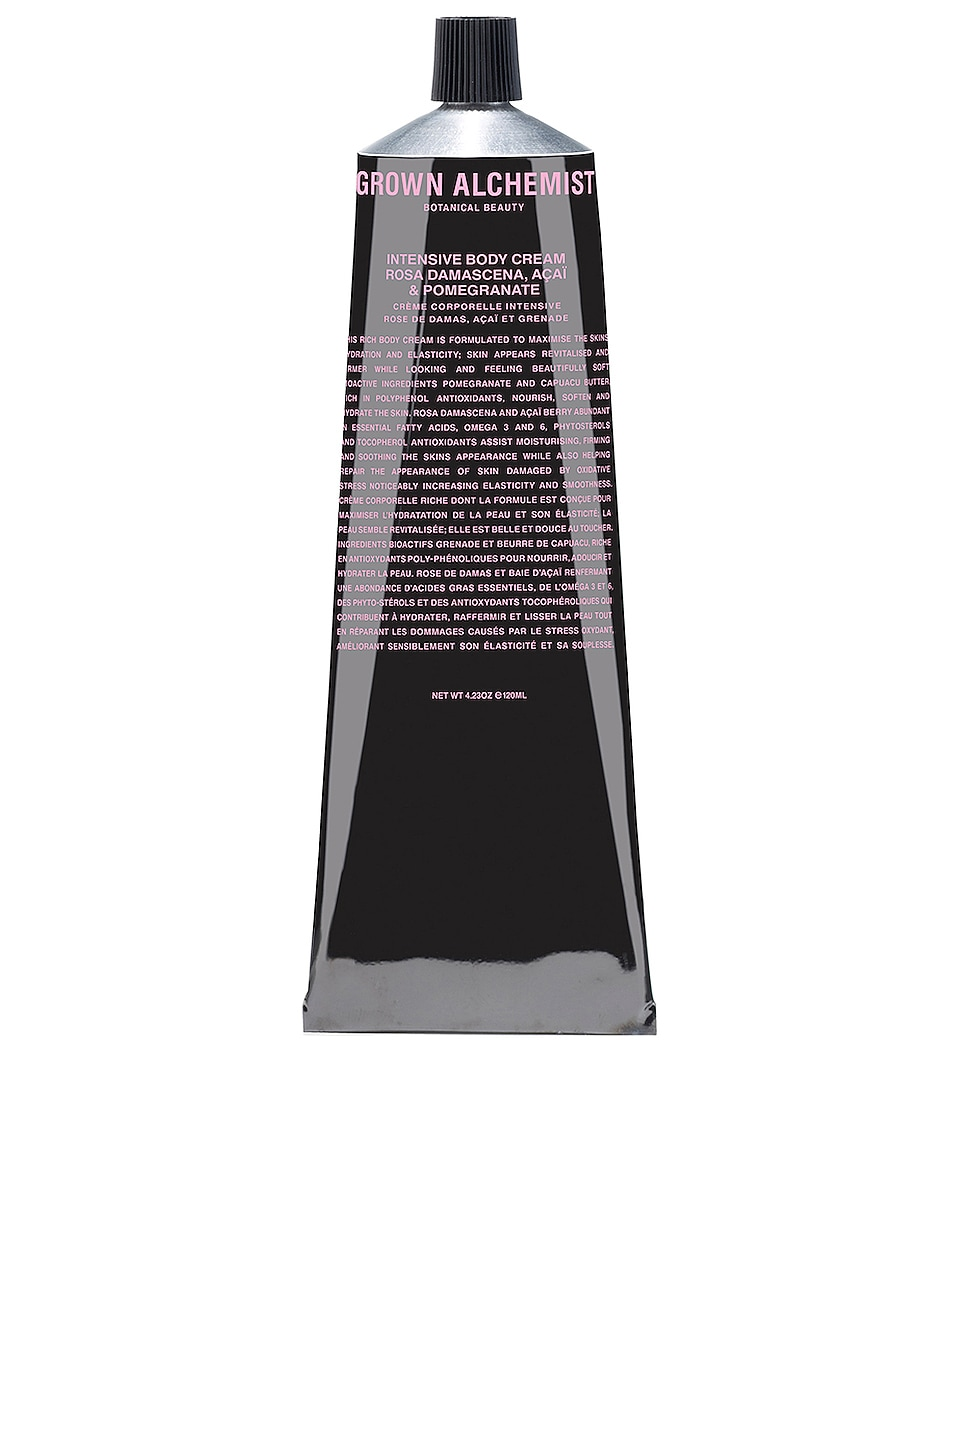 Grown Alchemist Intensive Body Cream Tube Rosa Damascena & Acai & Pomegranate